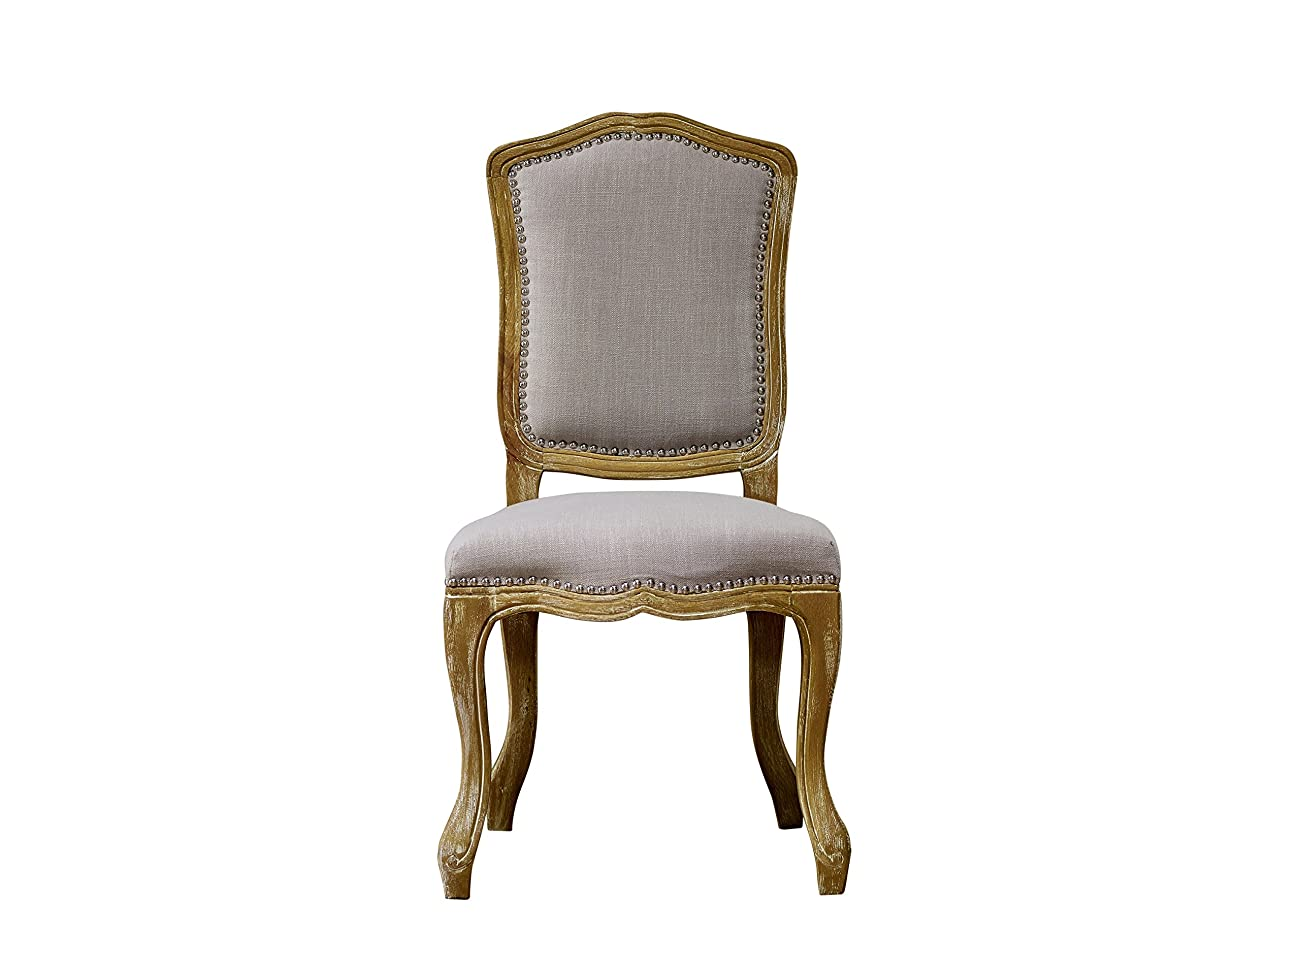 Baxton Studio Chateauneuf French Vintage Cottage Weathered Oak Linen Upholstered Dining Side Chair, Medium, Beige 1